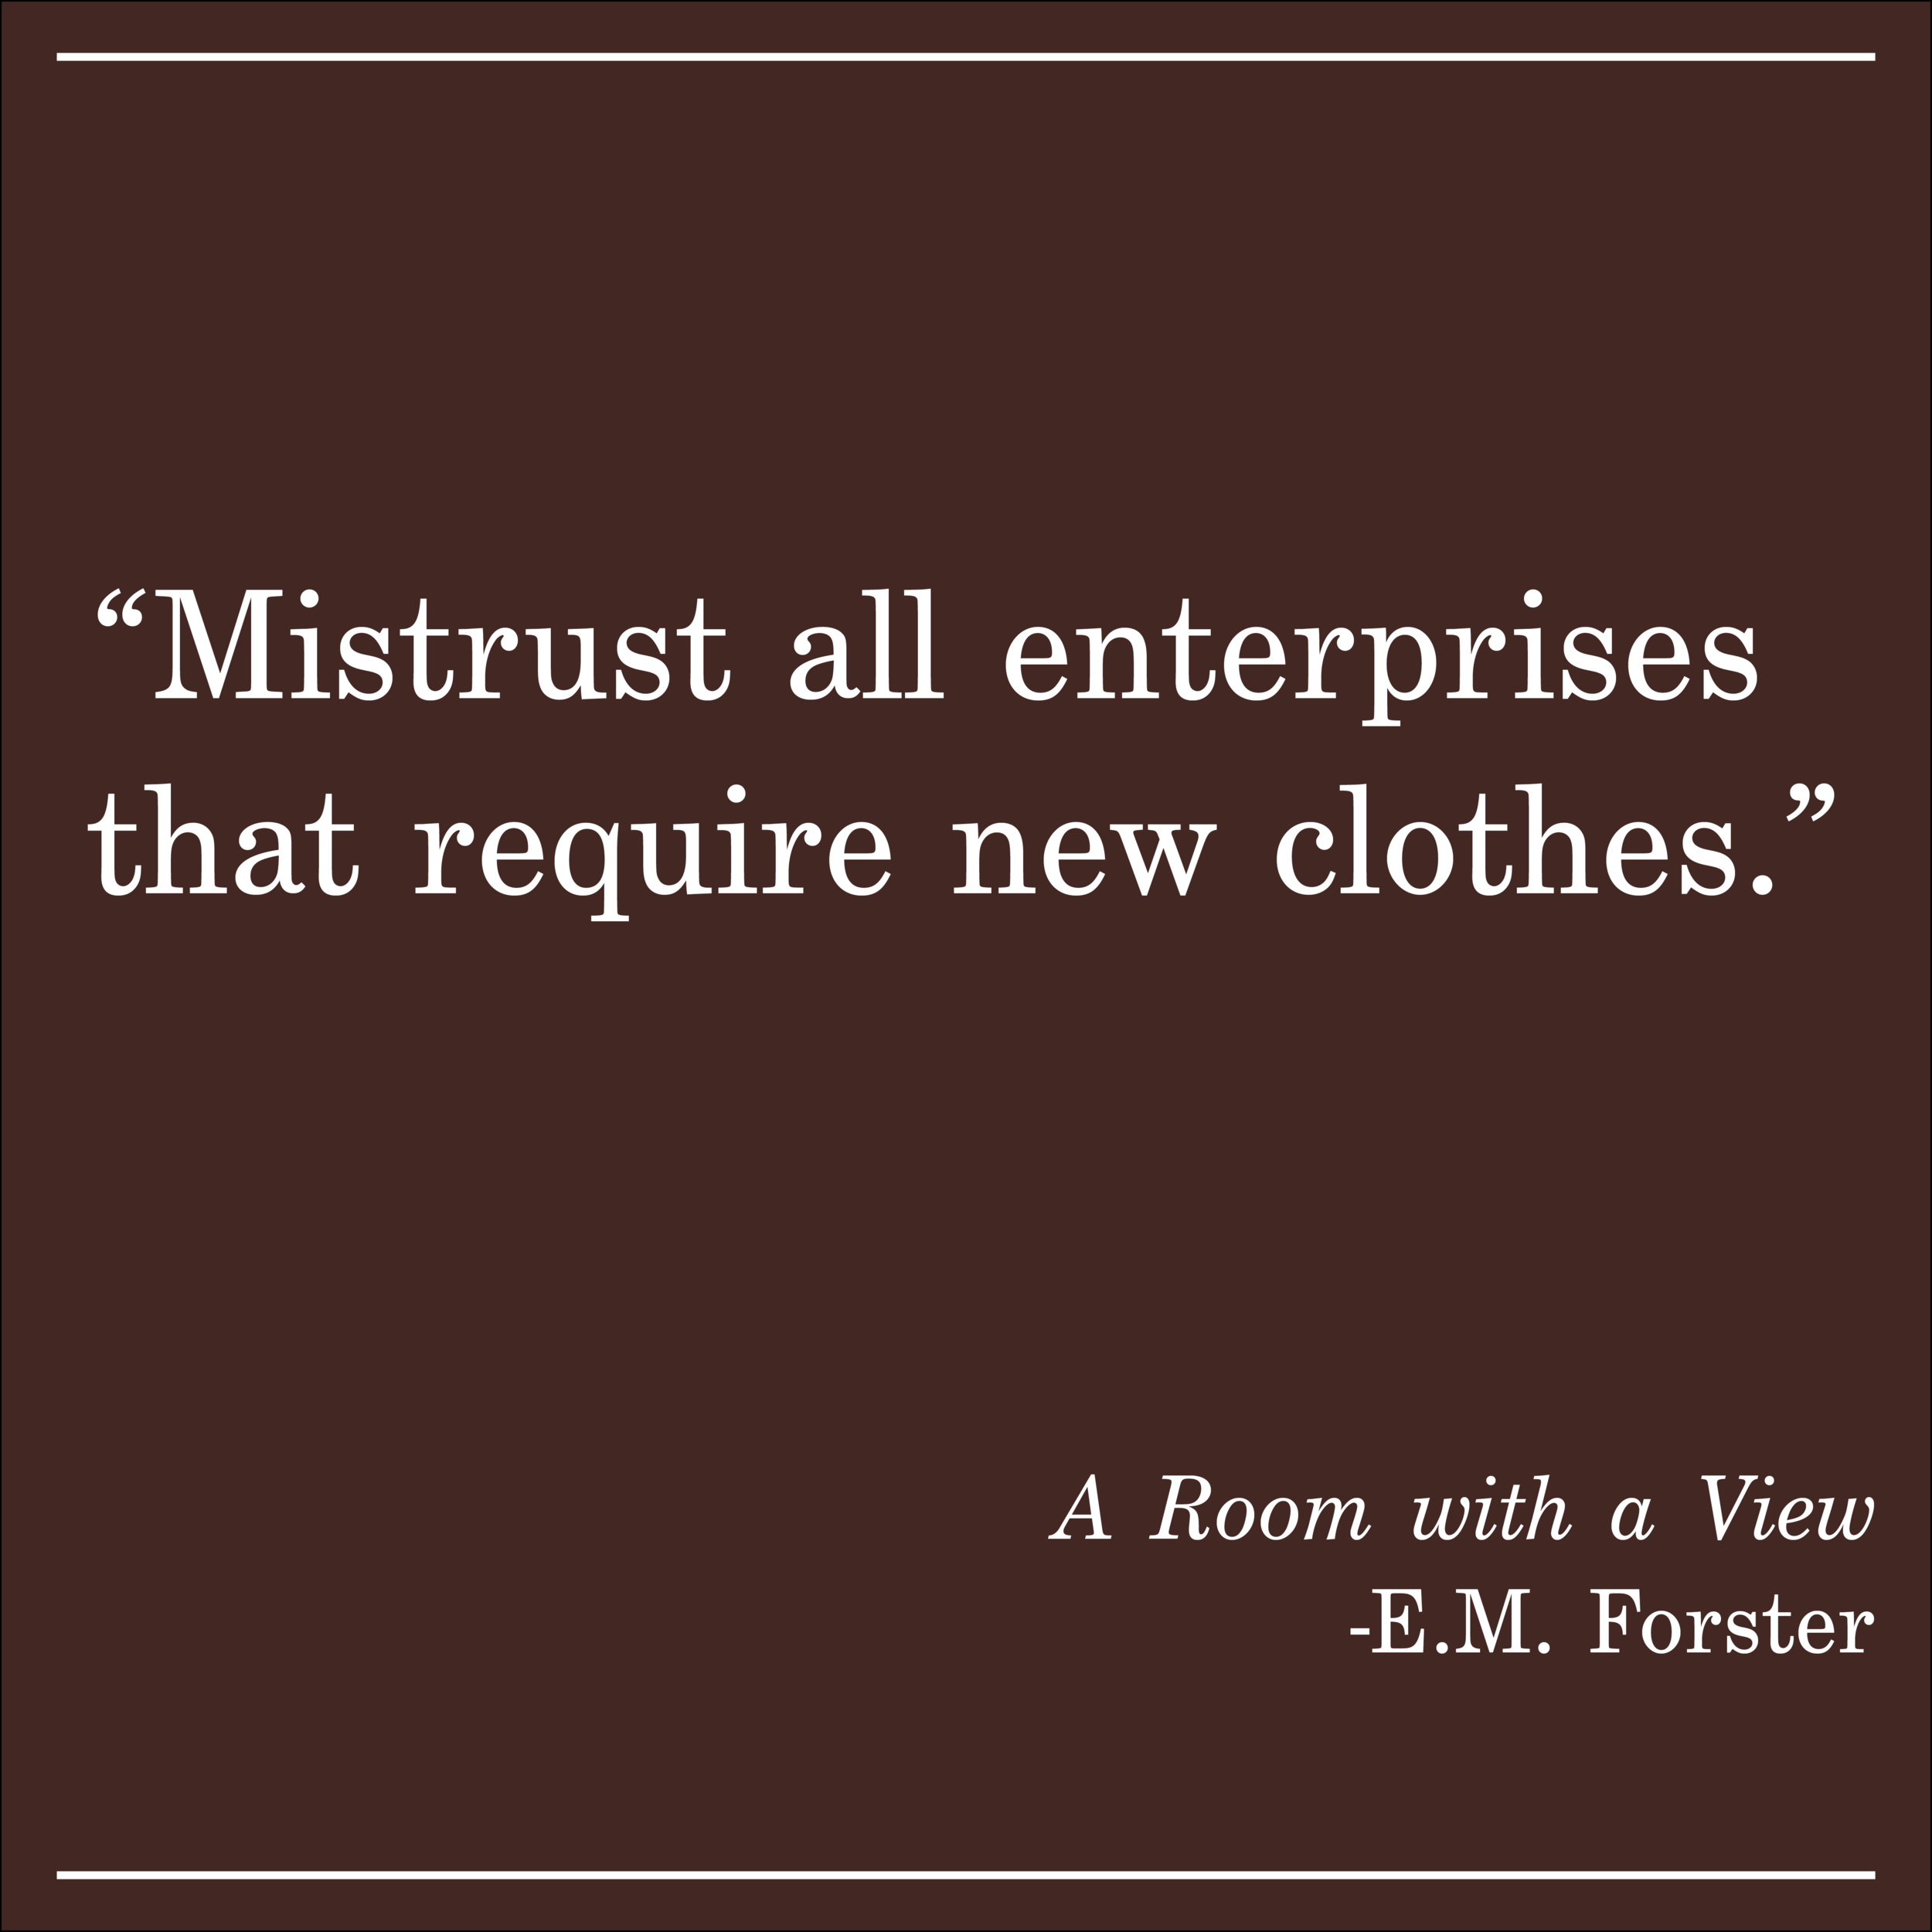 Daily Quote A Room With a View by EM Forster